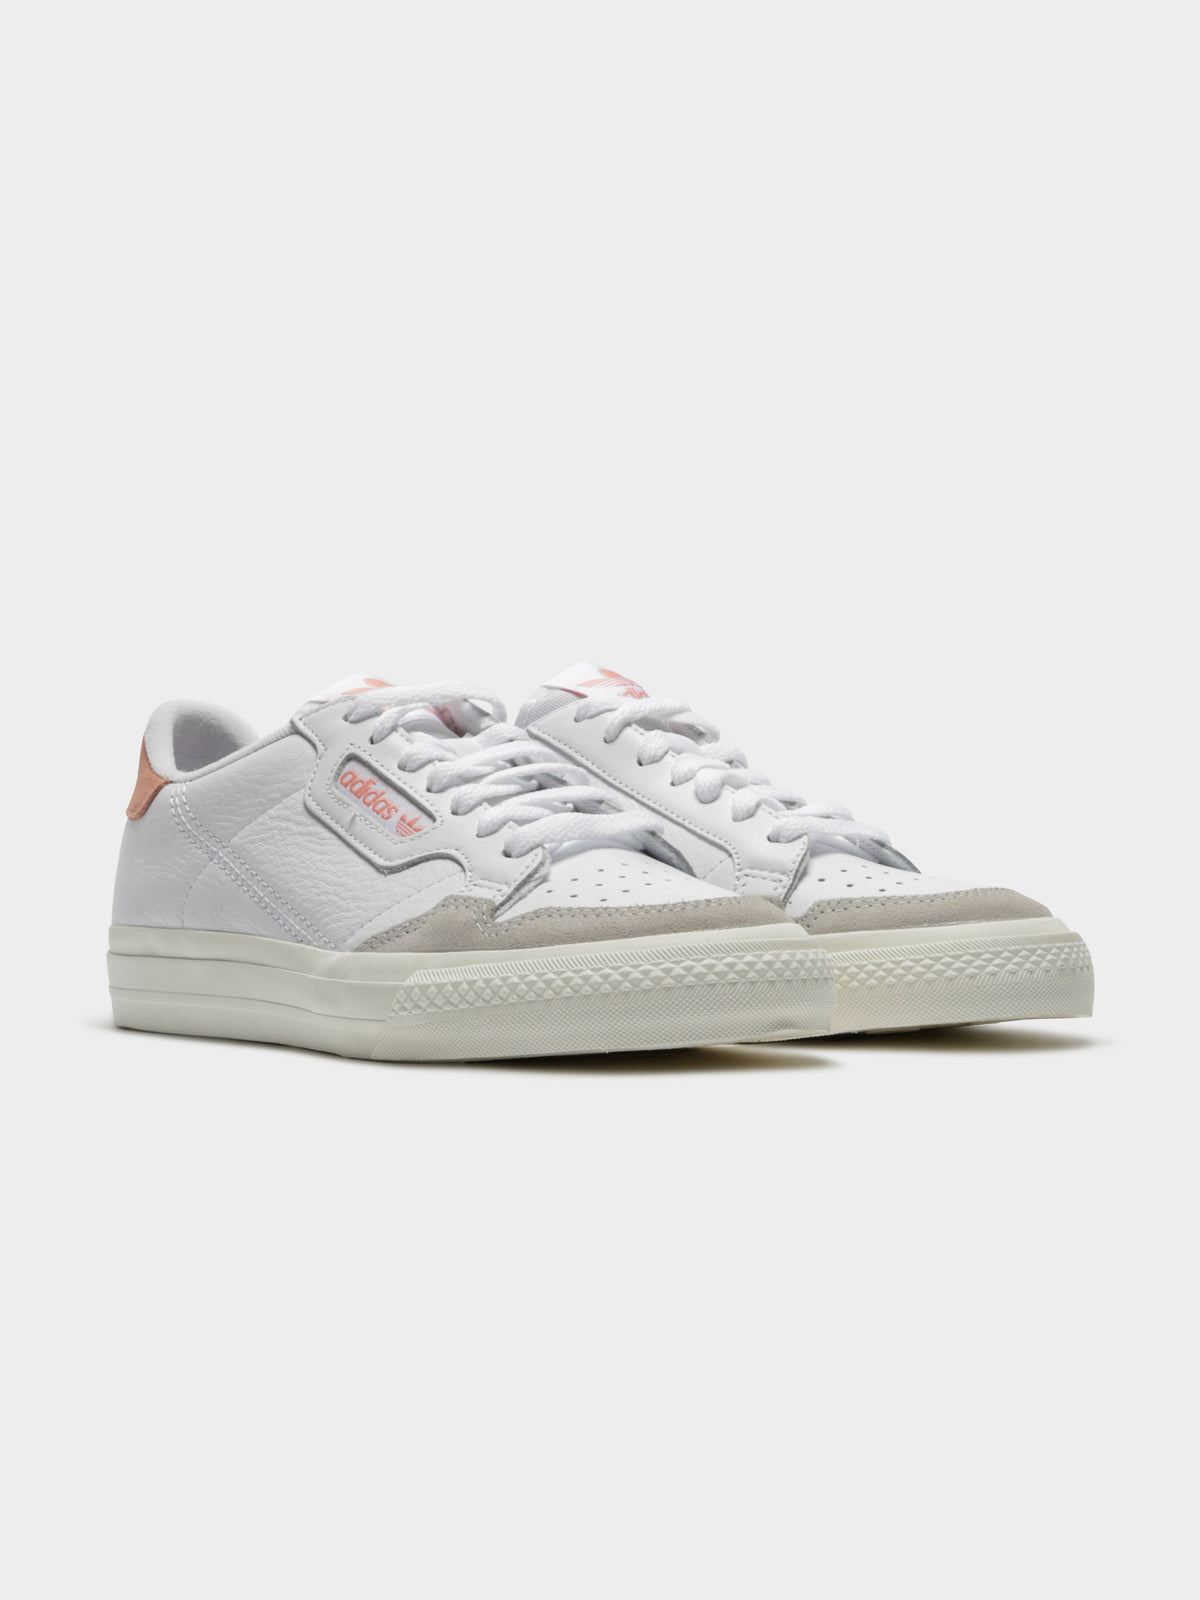 Womens Continental Vulc Sneakers in Cloud White & Glow Pink